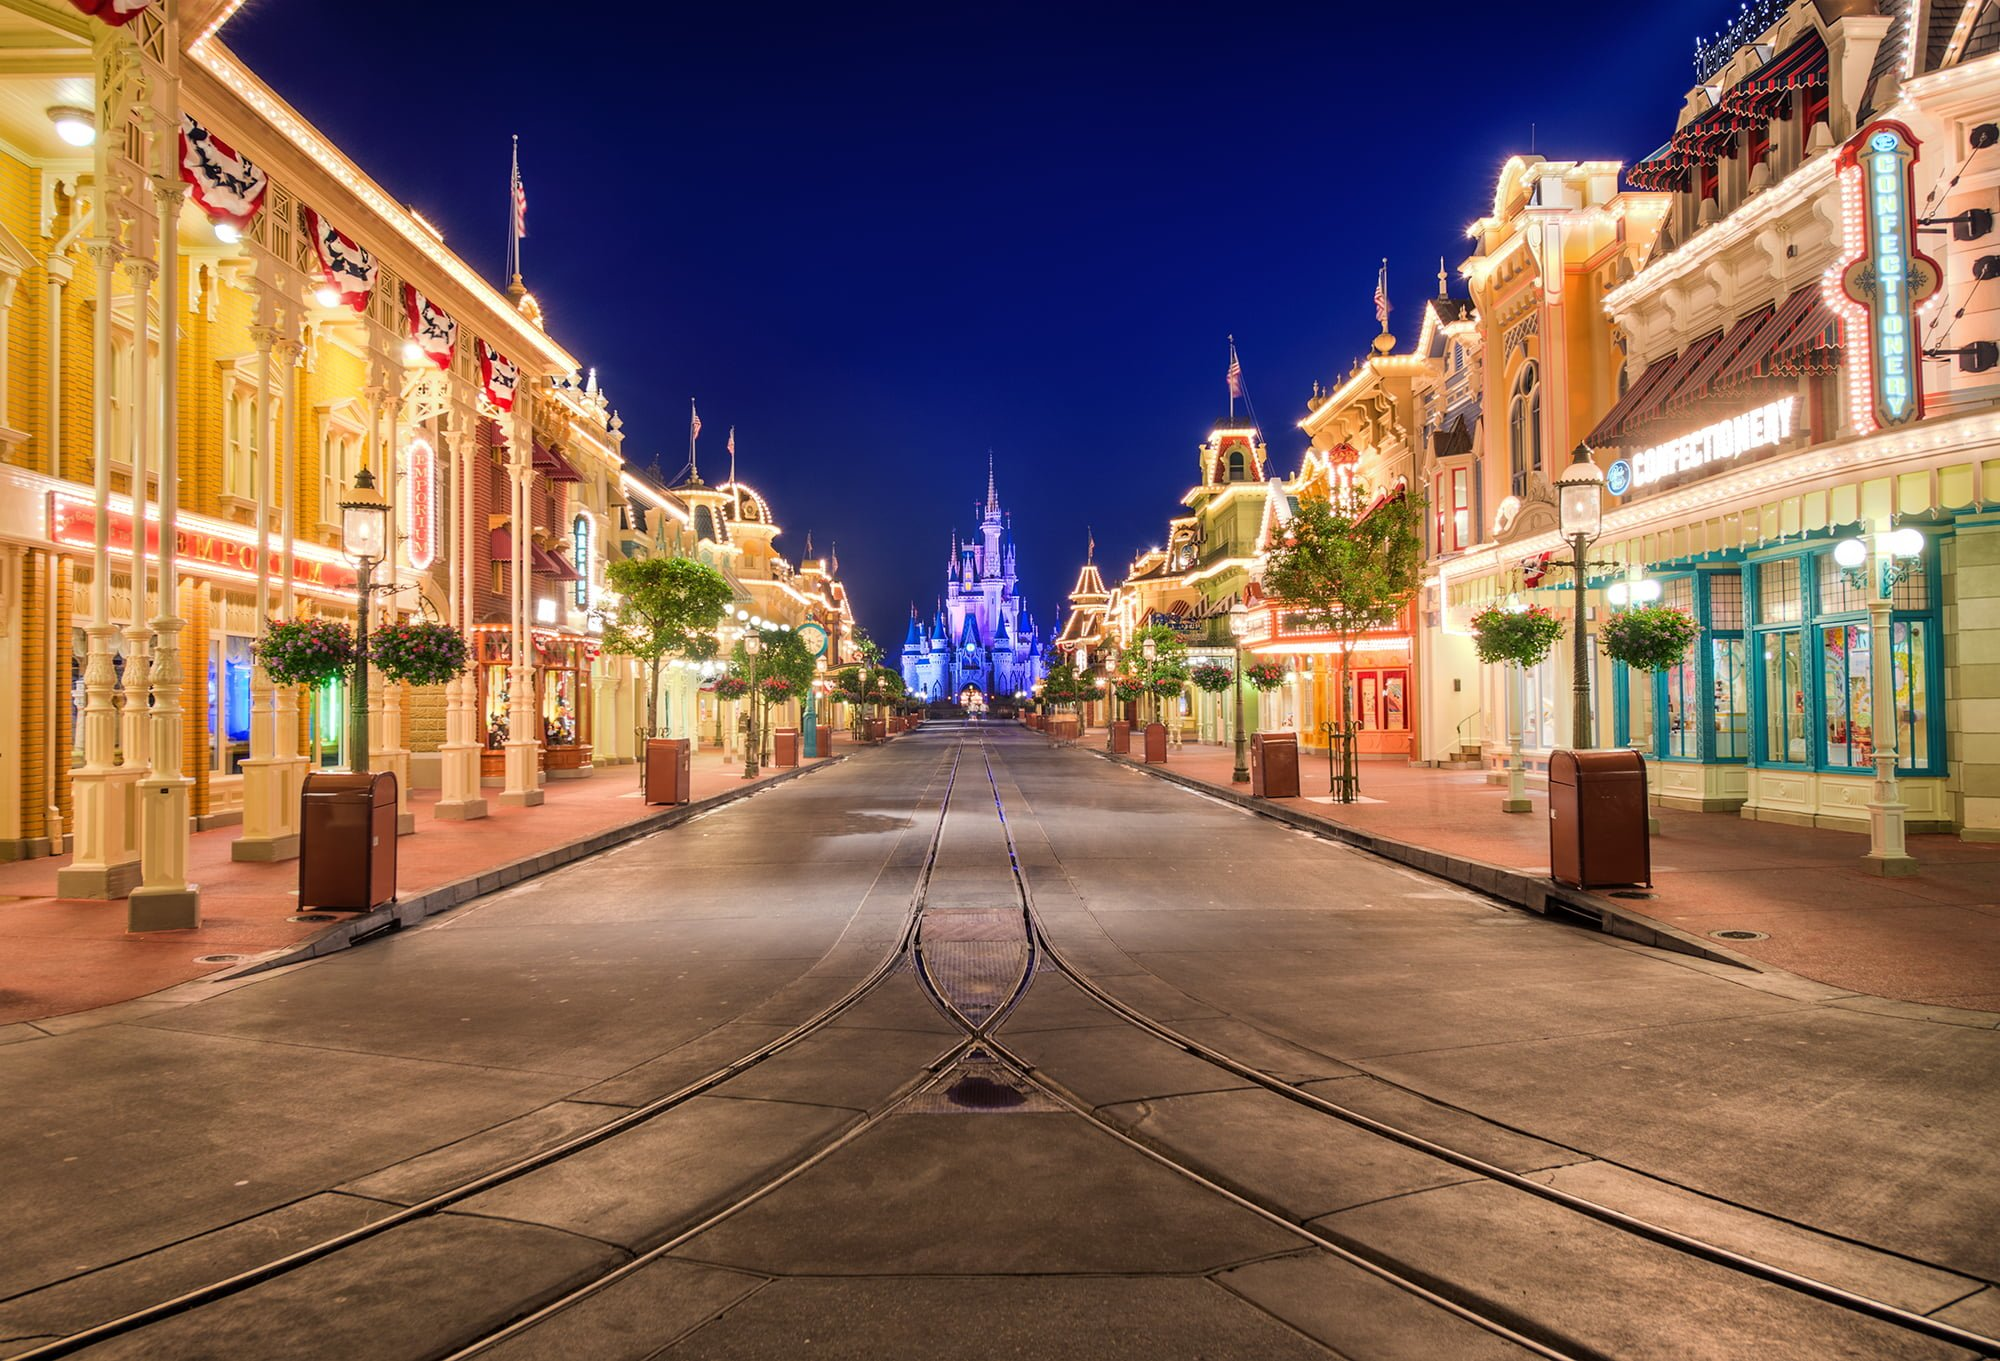 cbe34ccd2ced Authorized Walt Disney World Ticket Seller Discounts – There are a limited  number of third parties that are authorized by Walt Disney World to sell ...